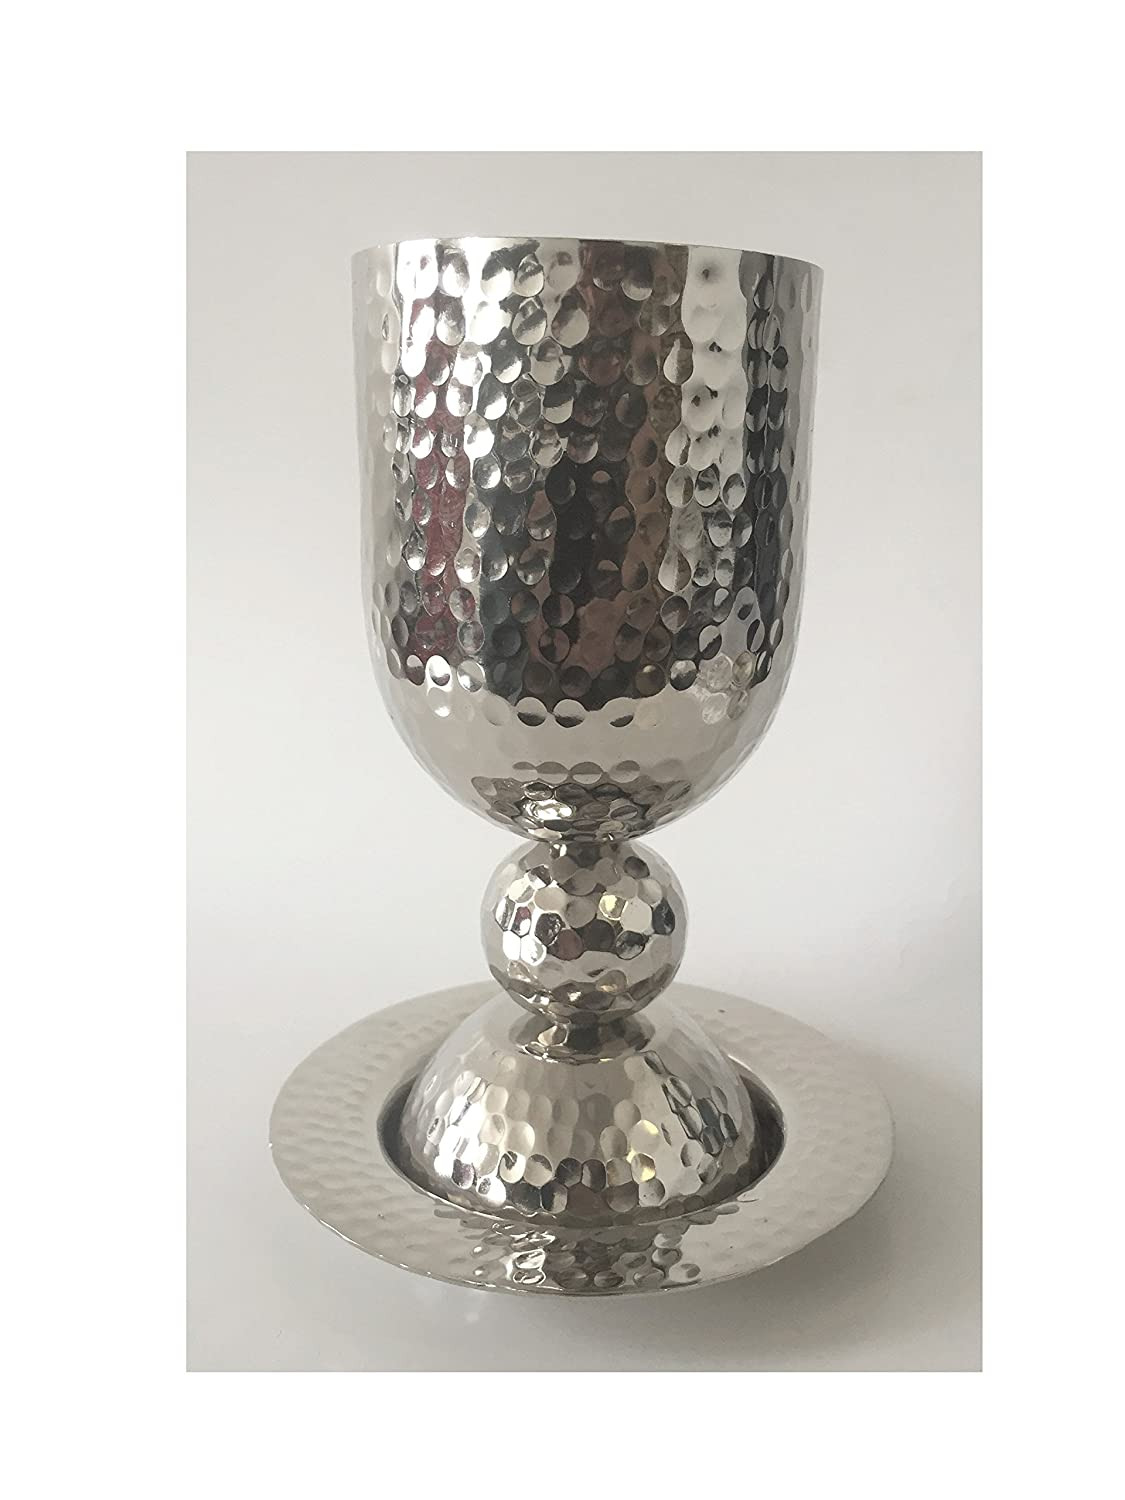 Hammered Metal Design Nickel Plated Kiddush Cup Goblet and Plate Saucer